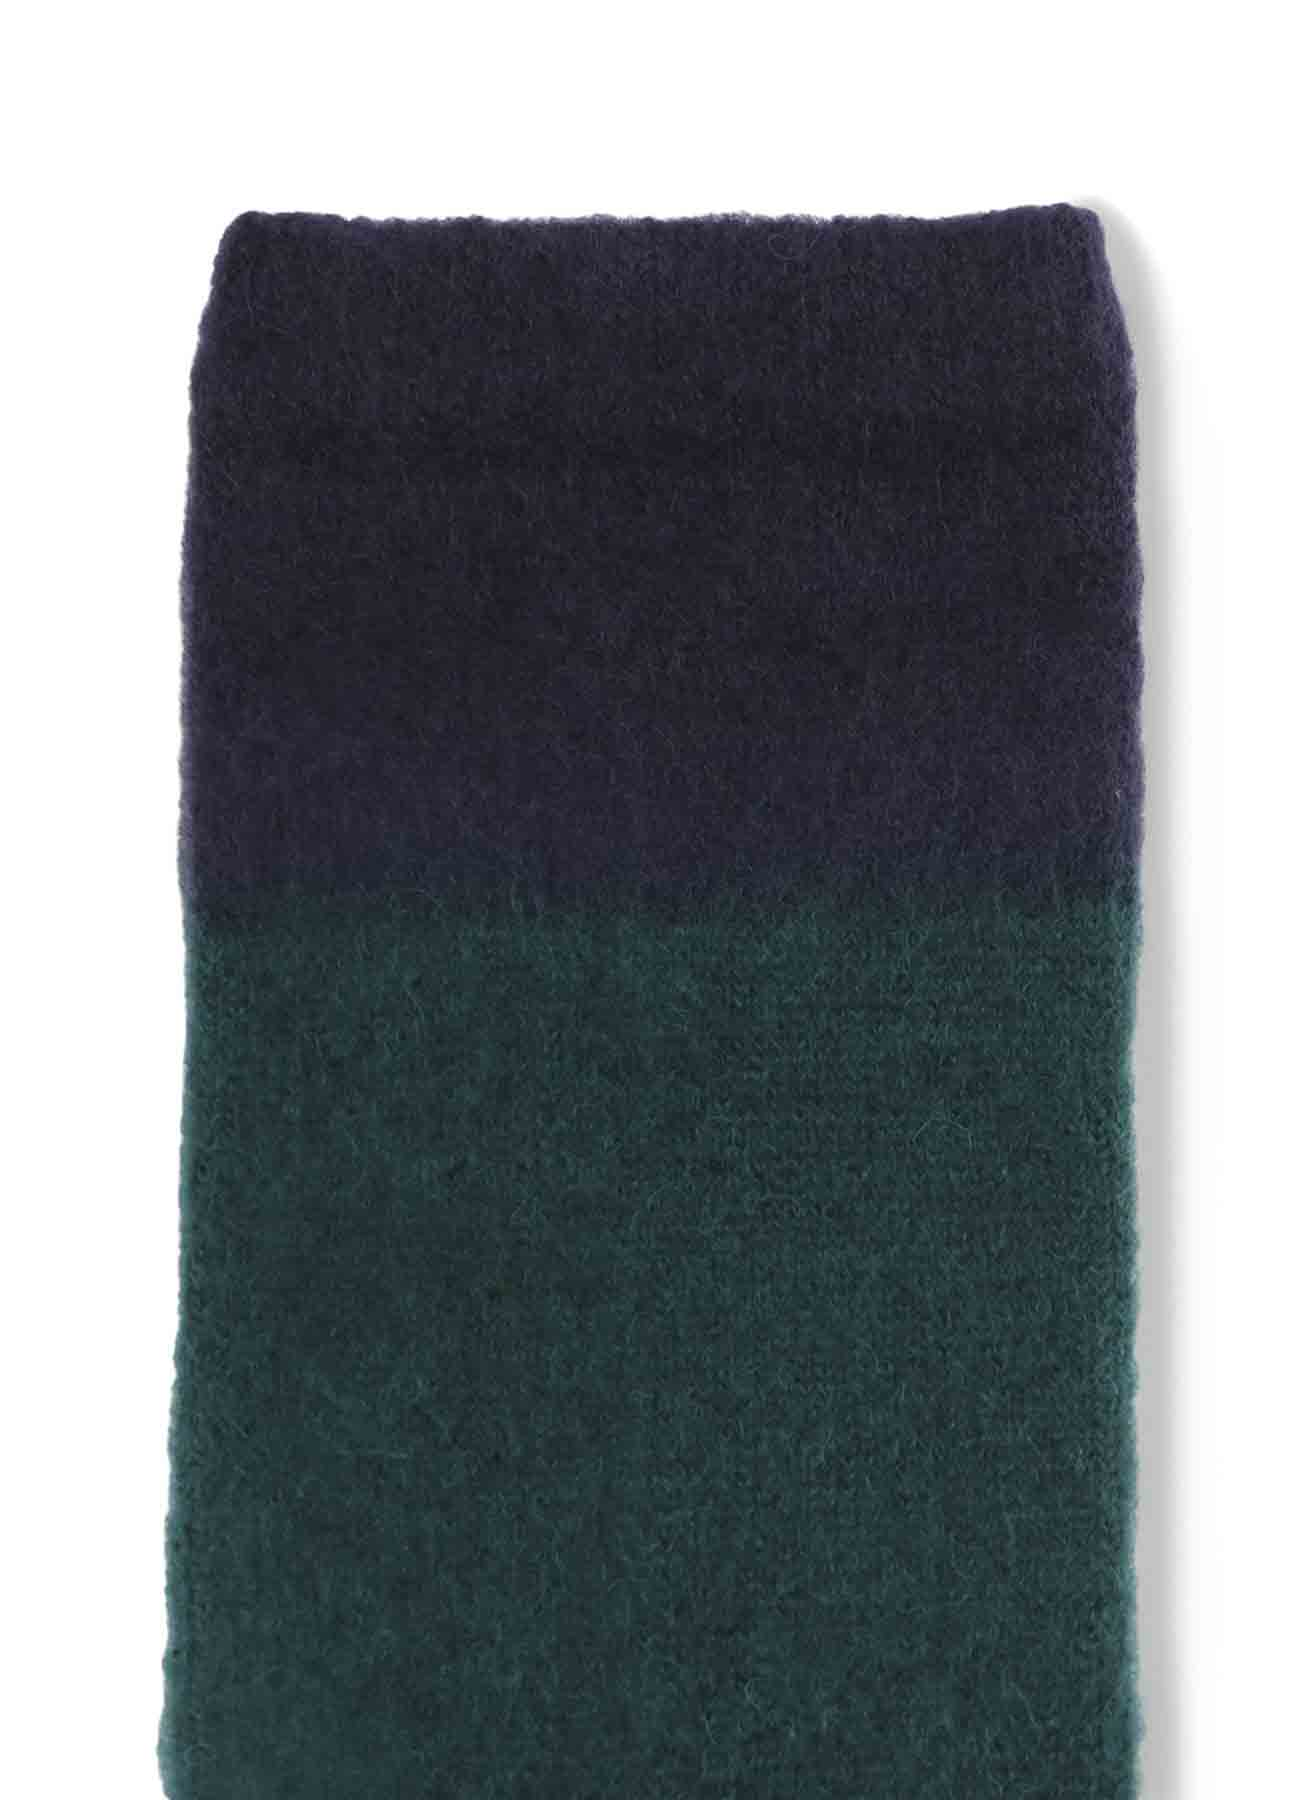 COLOR ACRYLIC RAISED SOCKS